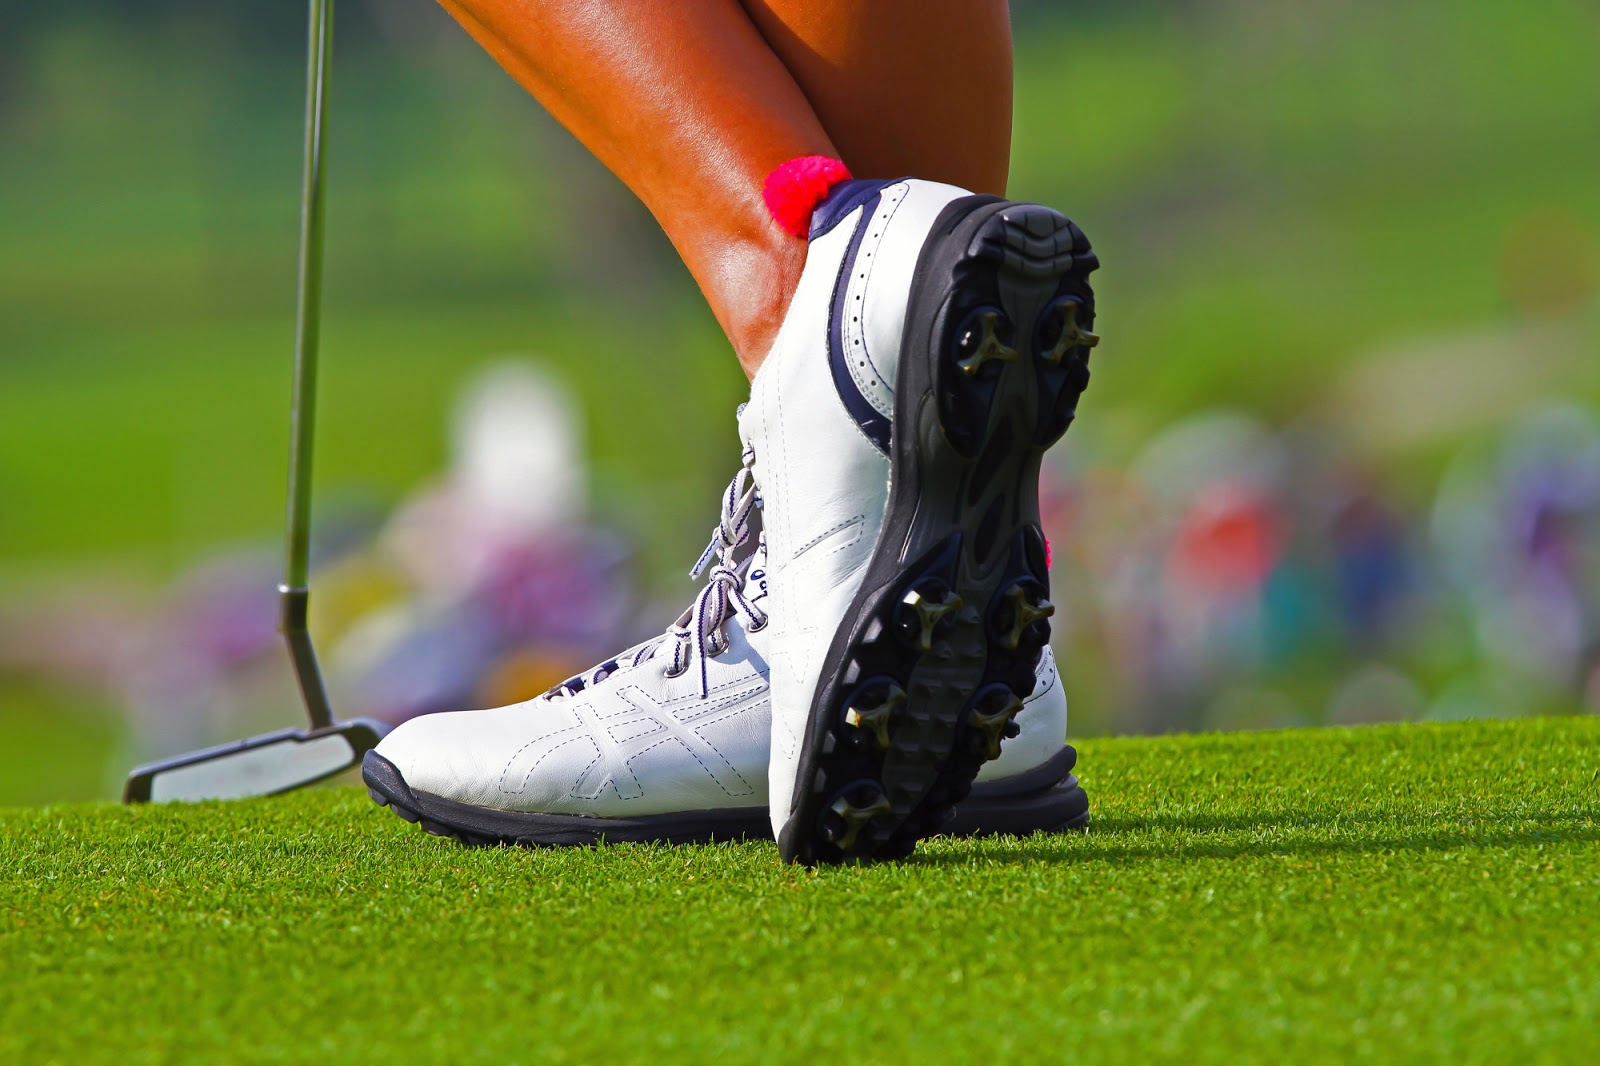 Stylish Golf Shoes: Top 5 Best Golf